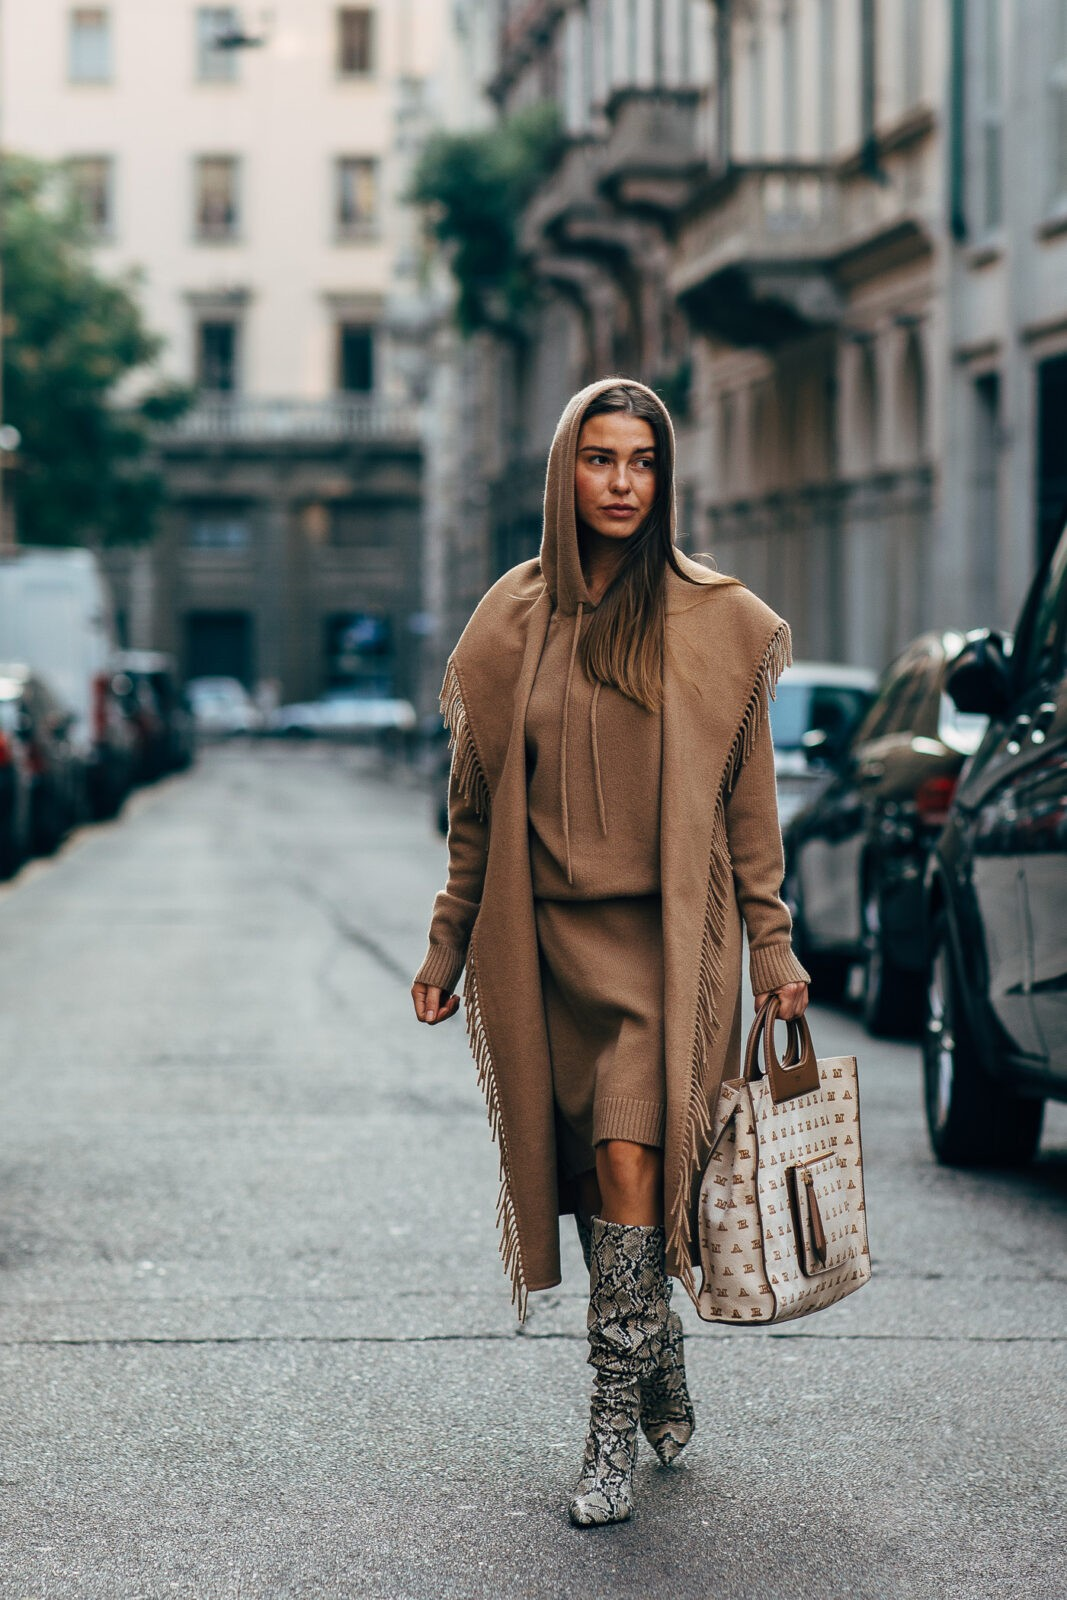 sophia roe edit seven camel coat stylebook january 2019